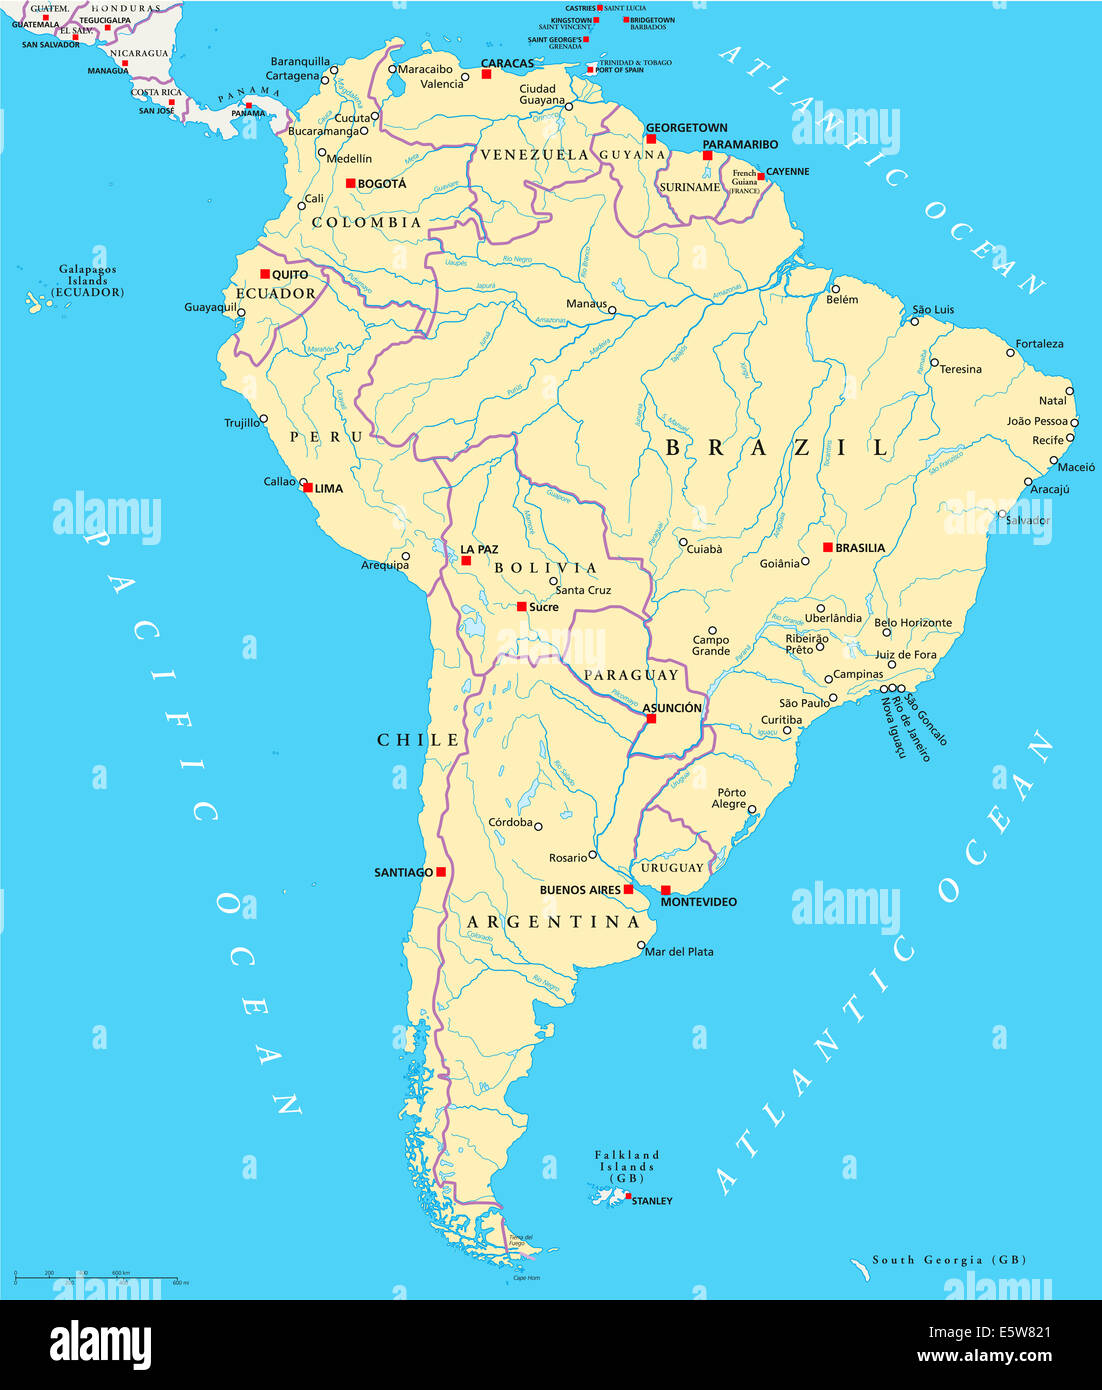 South America Political Map With Single States Capitals - South america map labeled